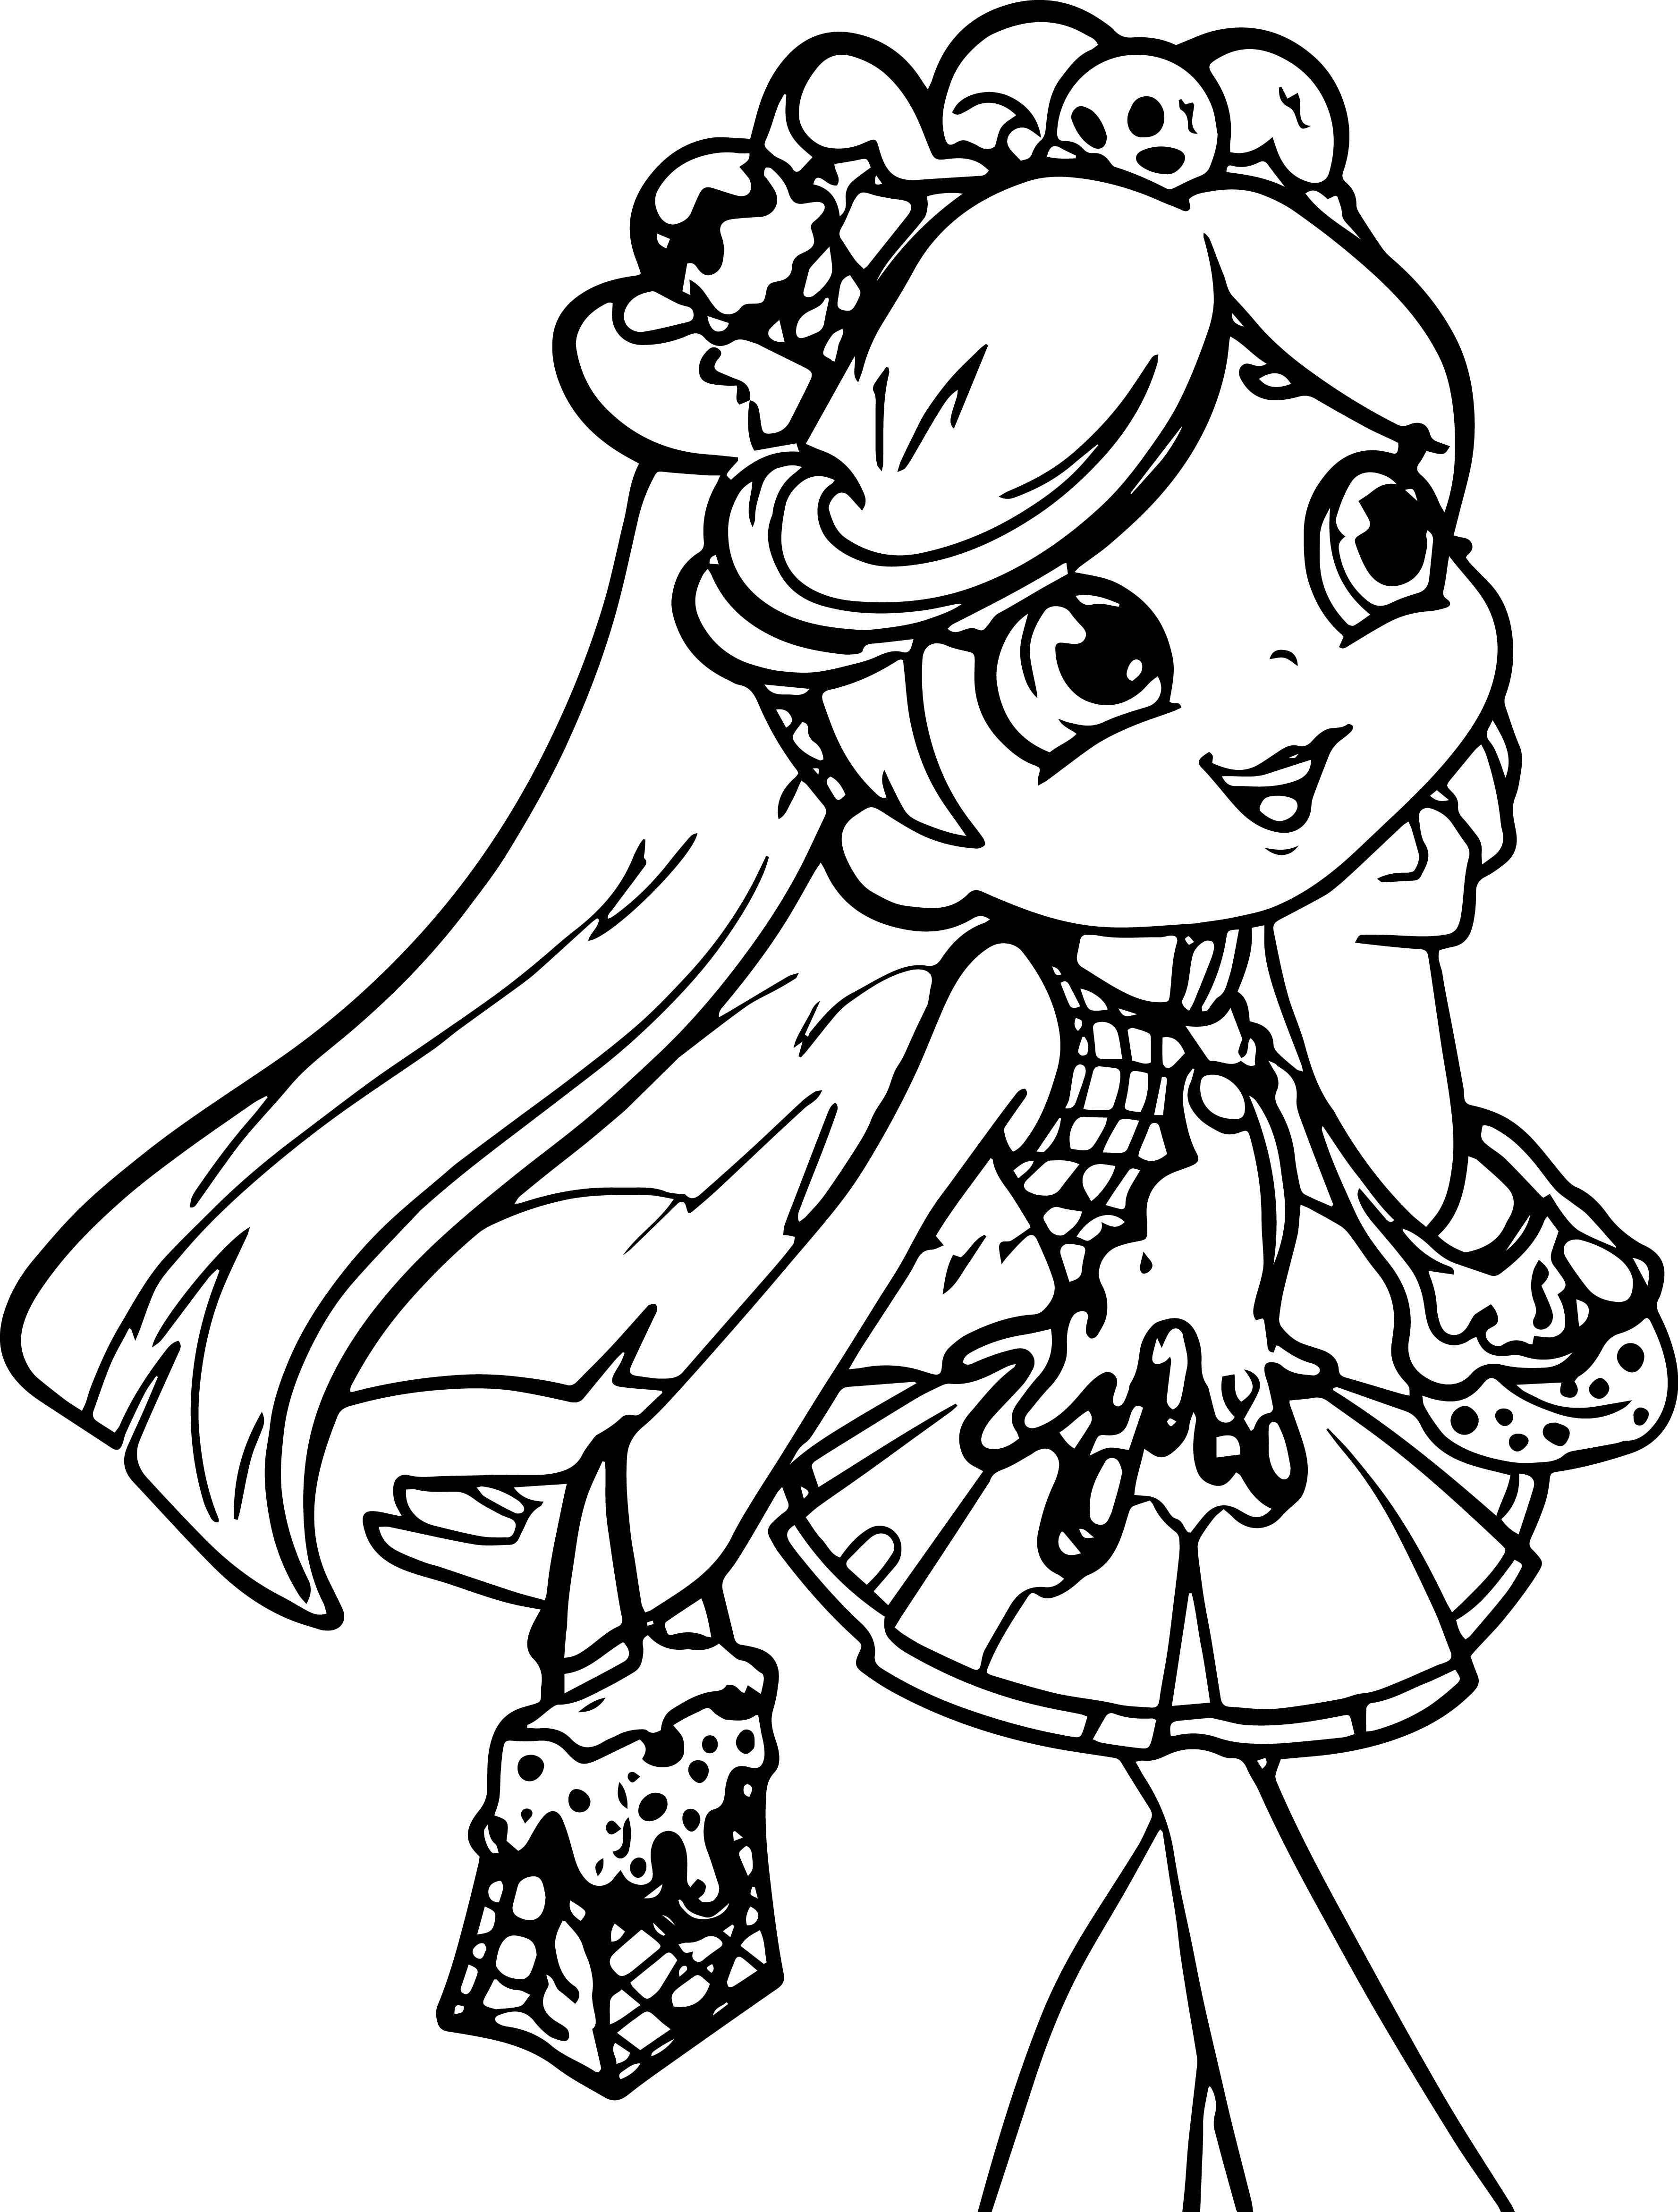 3554x4686 Shopkins Coloring Pages For Girls Download